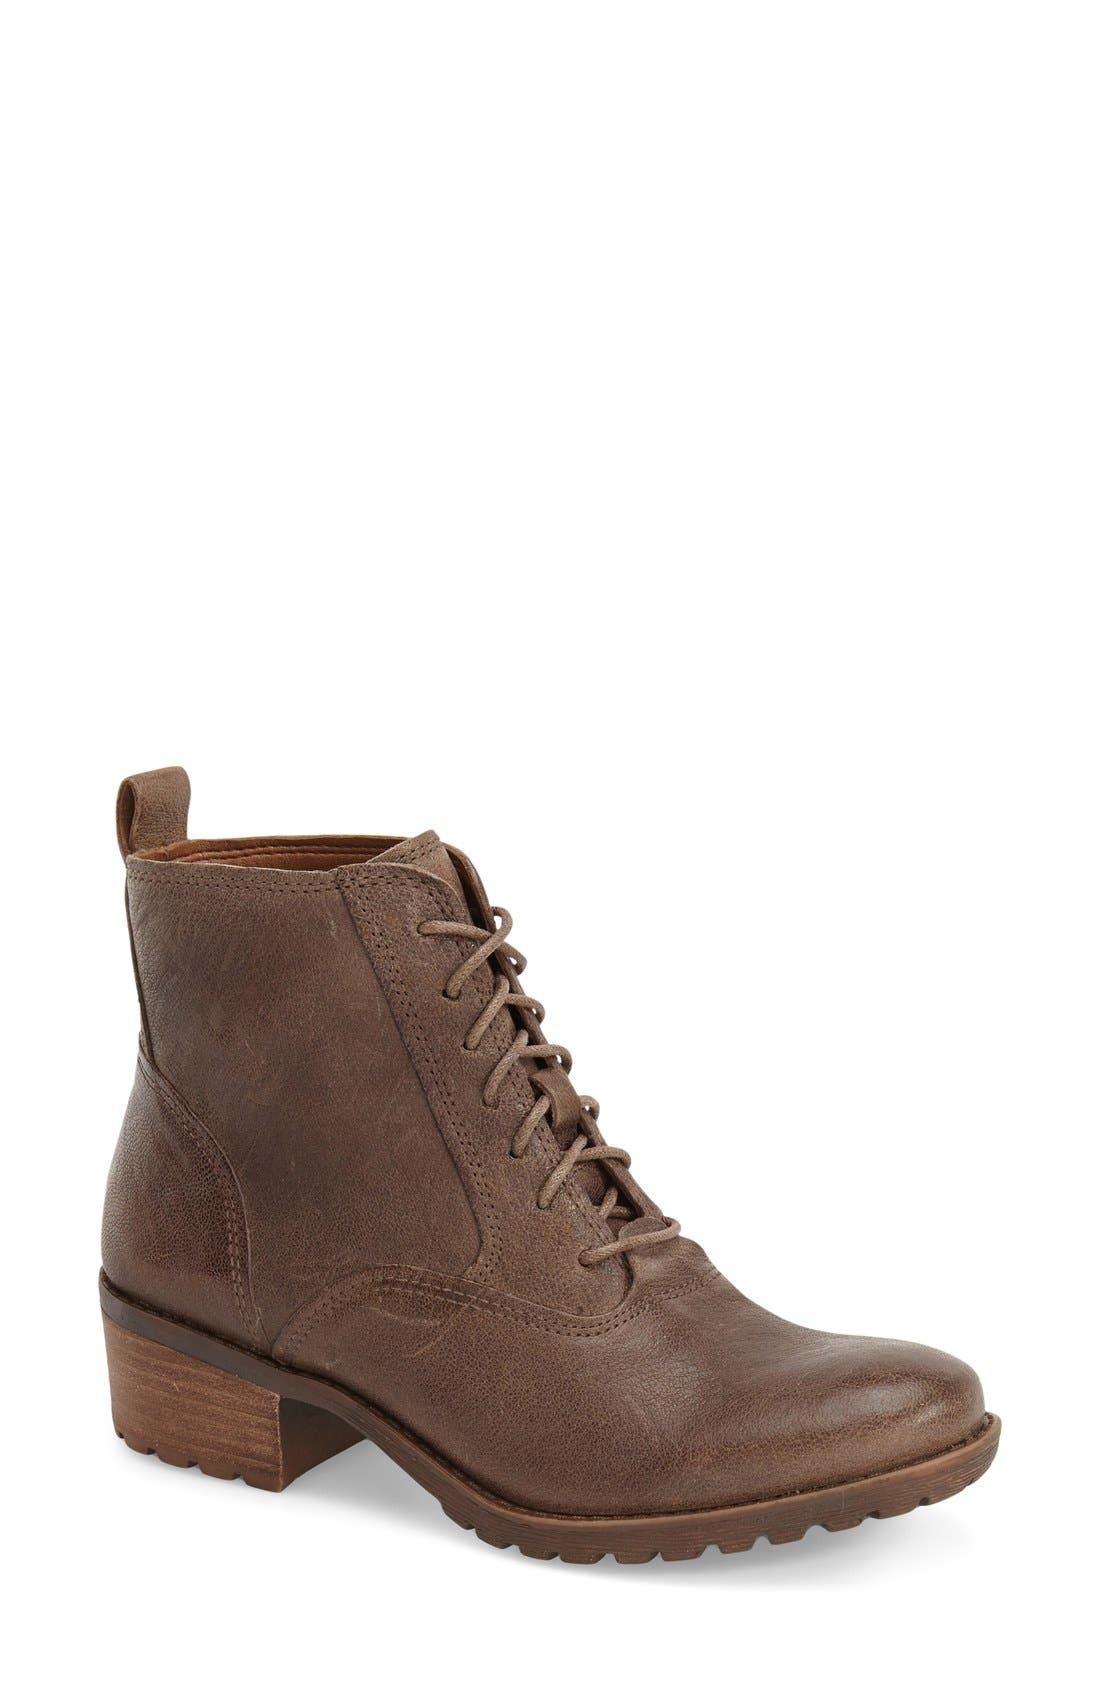 Main Image - Lucky Brand 'Giorgia' Lace Up Bootie (Women)